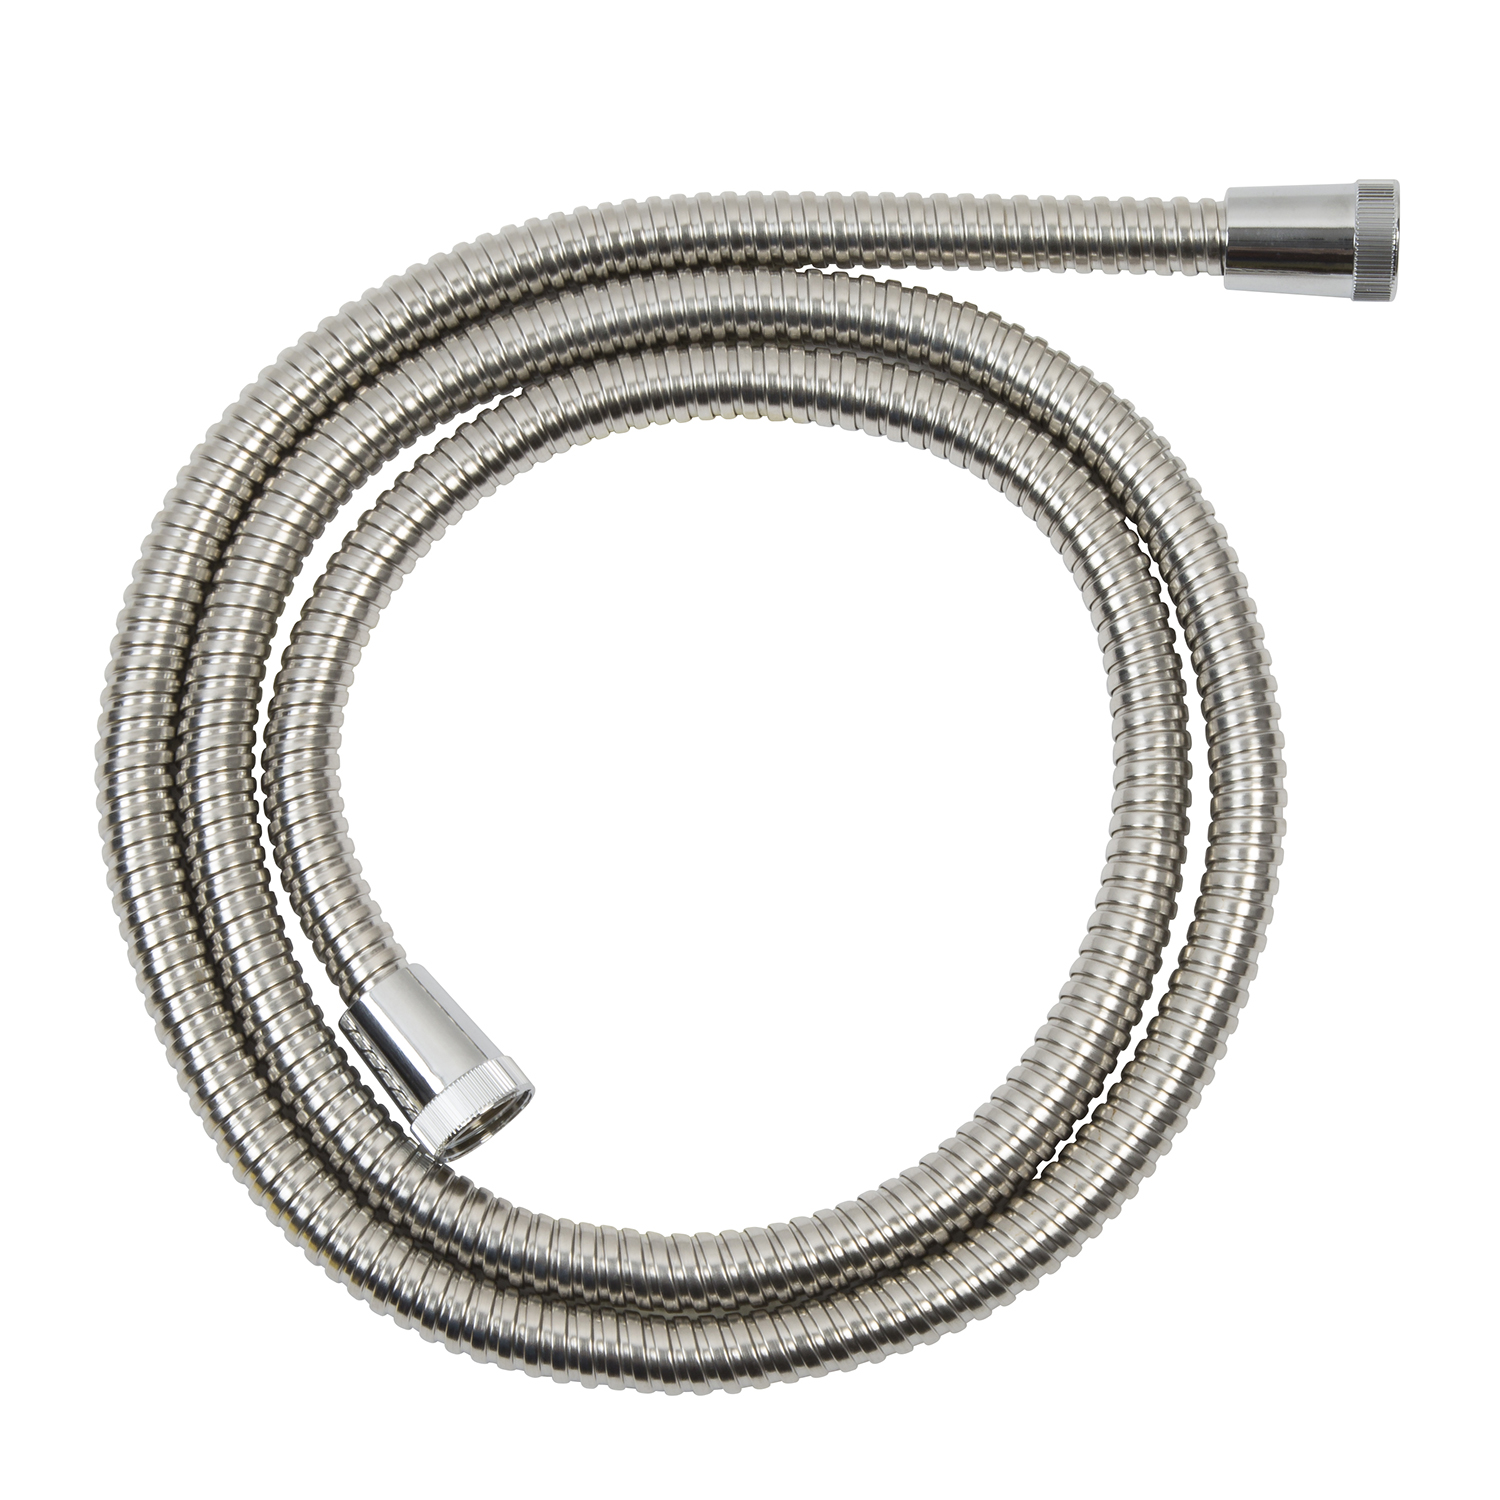 Image of Croydex 1.75m Stainless Steel Hose, Chrome